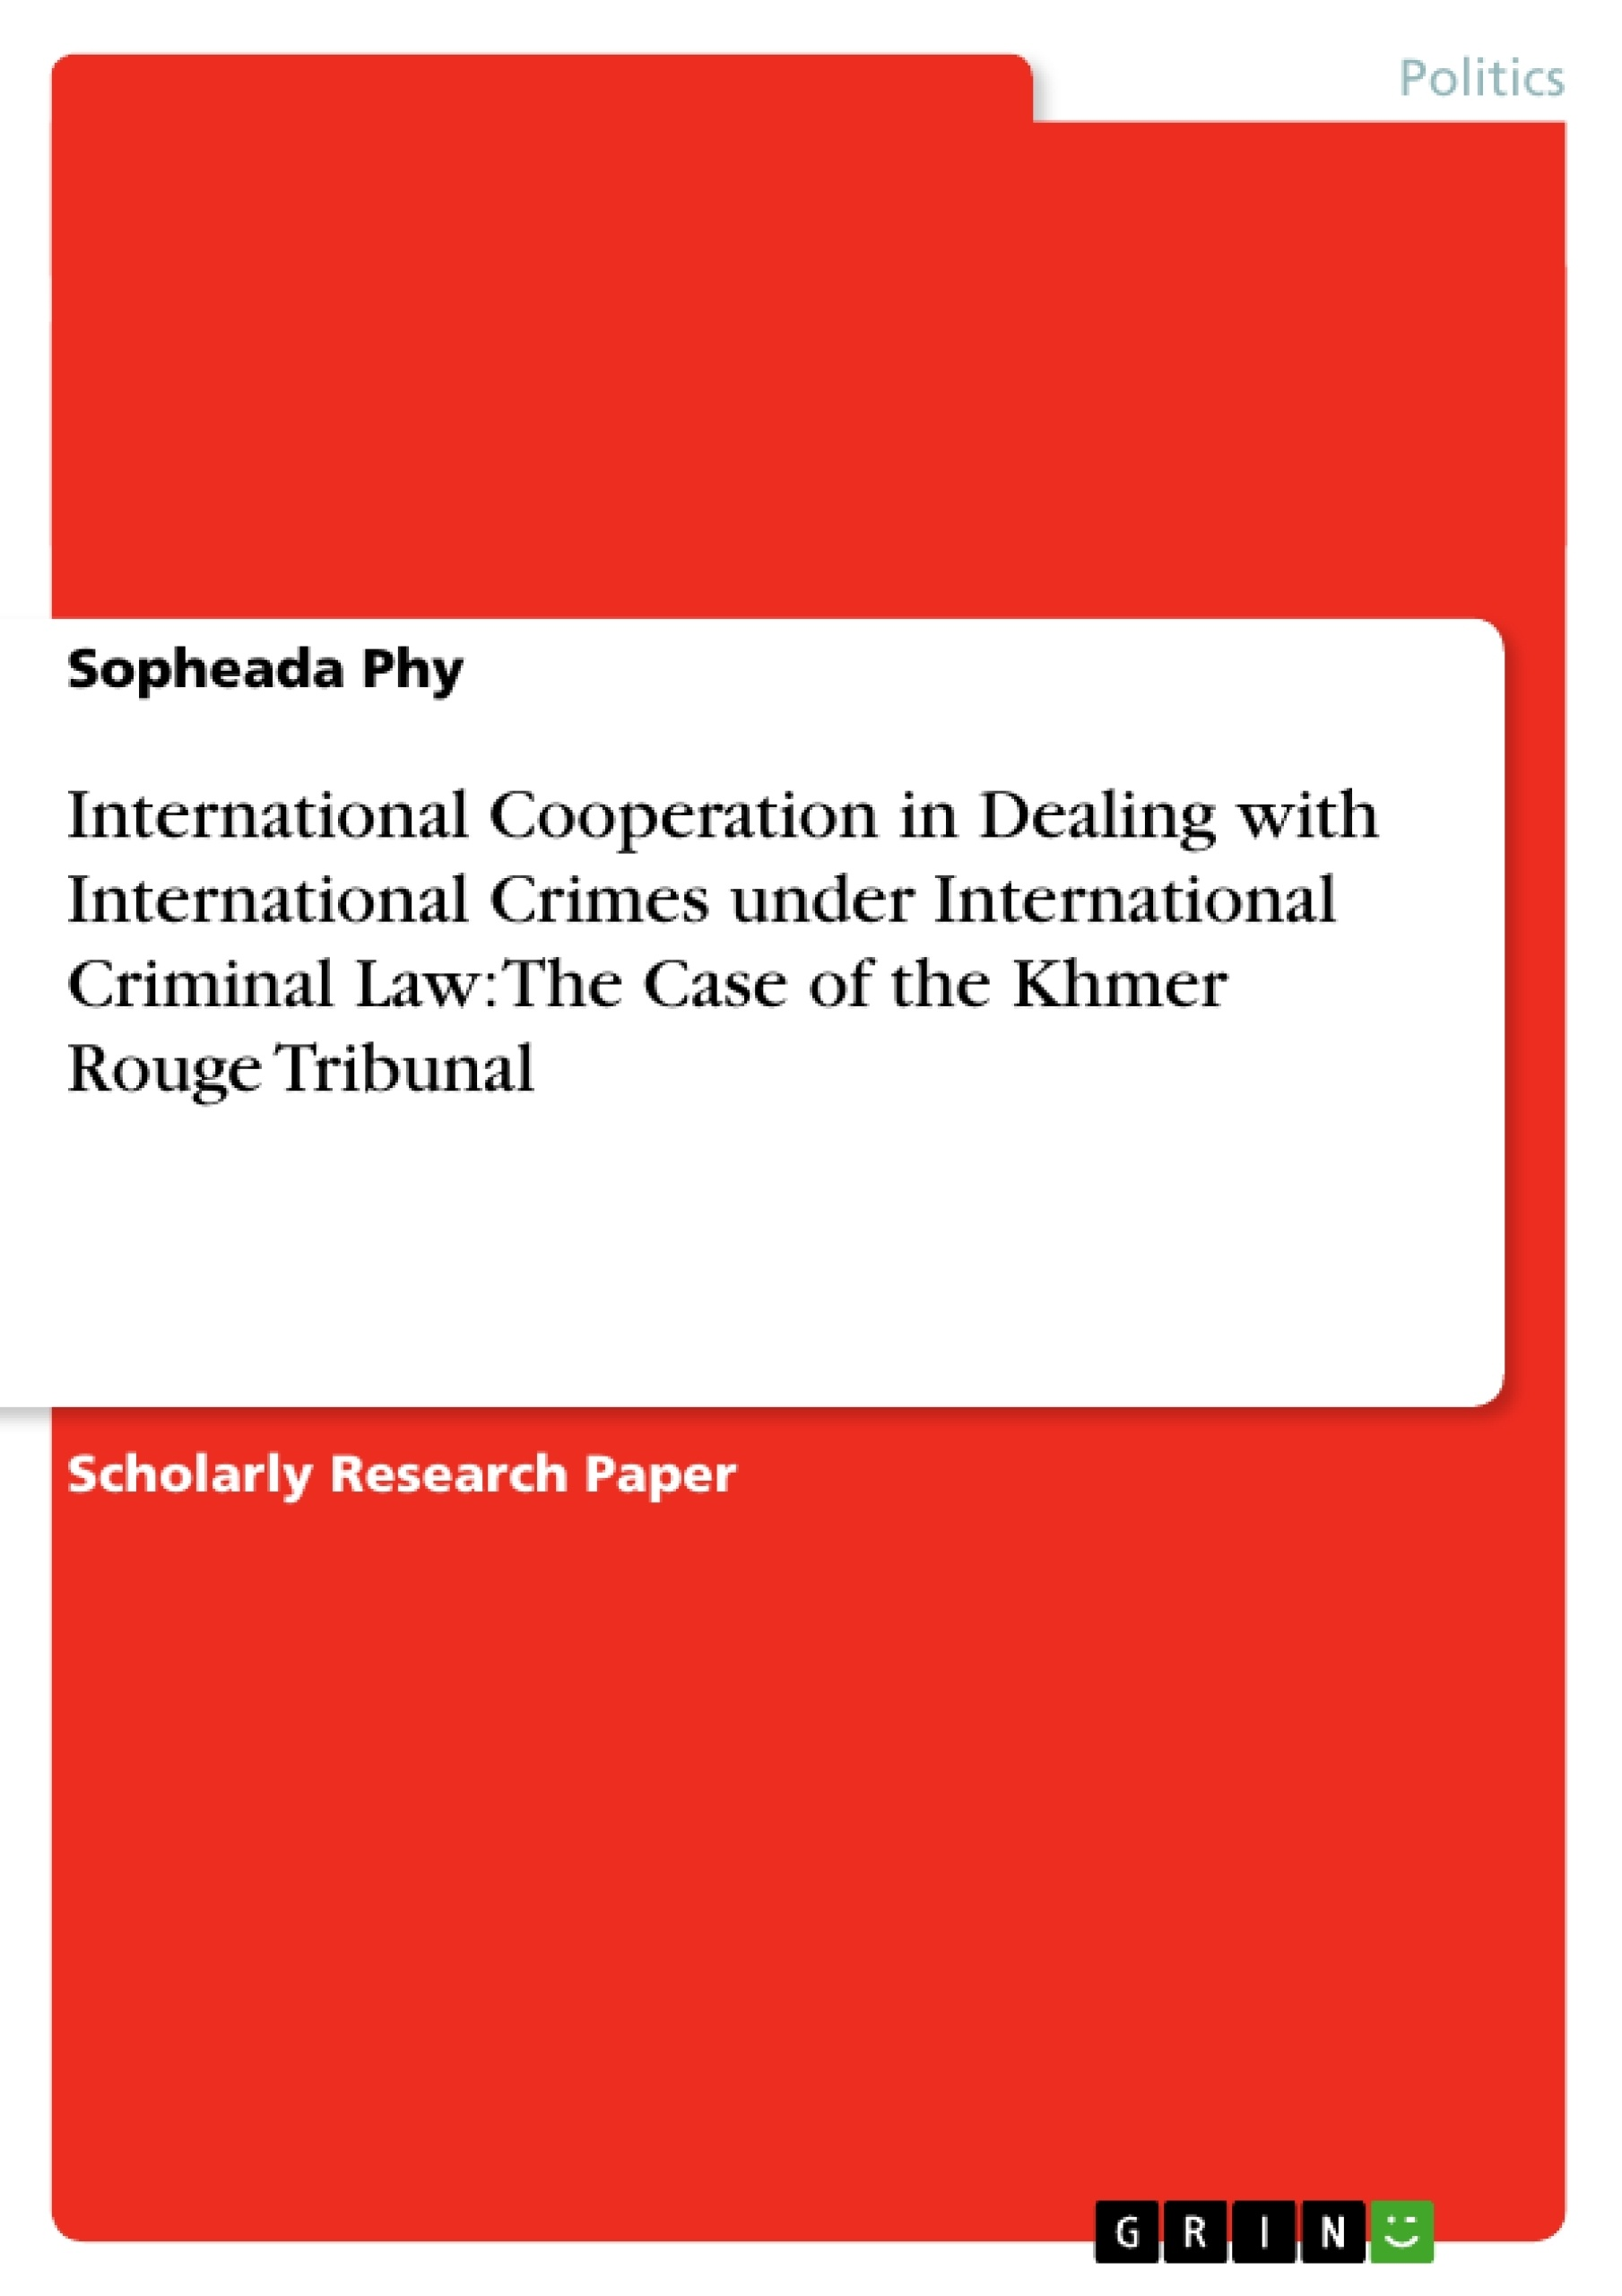 Title: International Cooperation in Dealing with International Crimes under International Criminal Law: The Case of the Khmer Rouge Tribunal